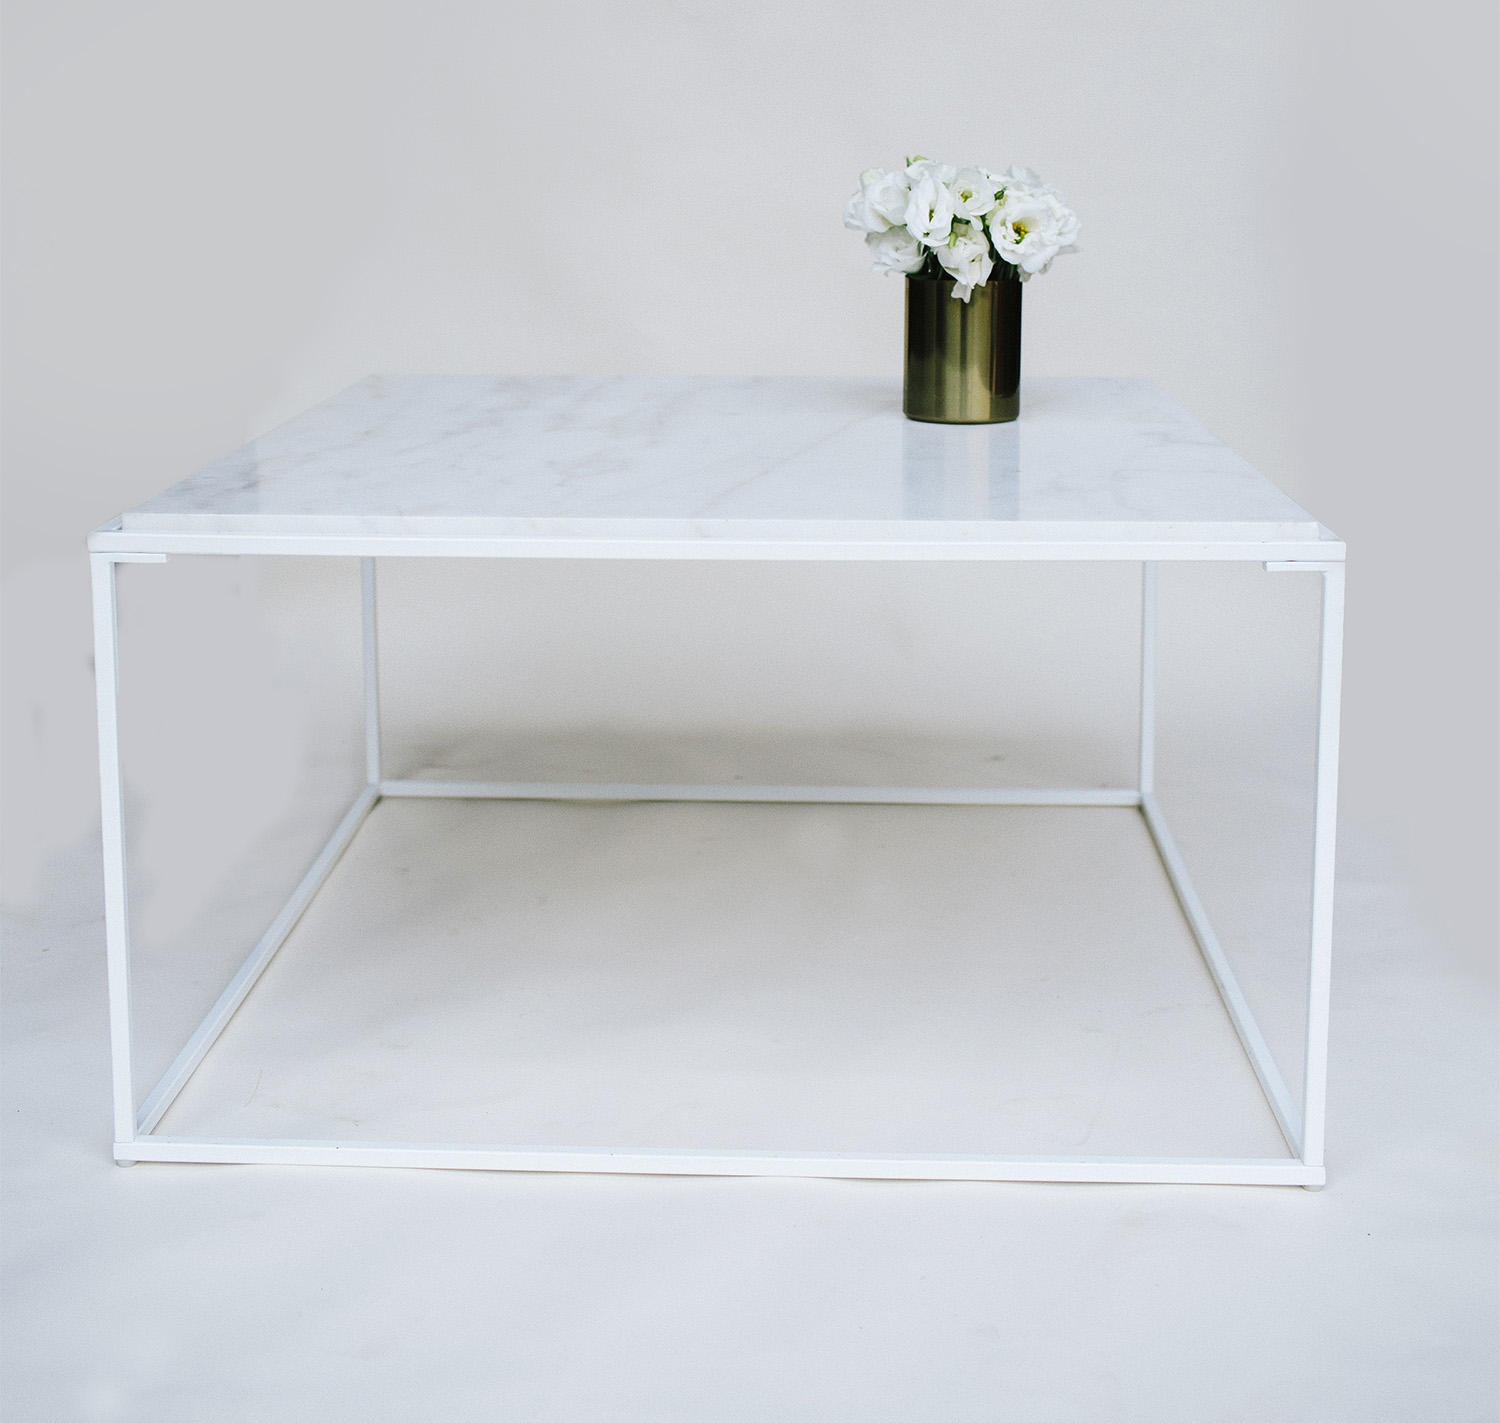 Marble Cube Coffee Table Rosie Pose Event Hire Luxe - Marble cube coffee table